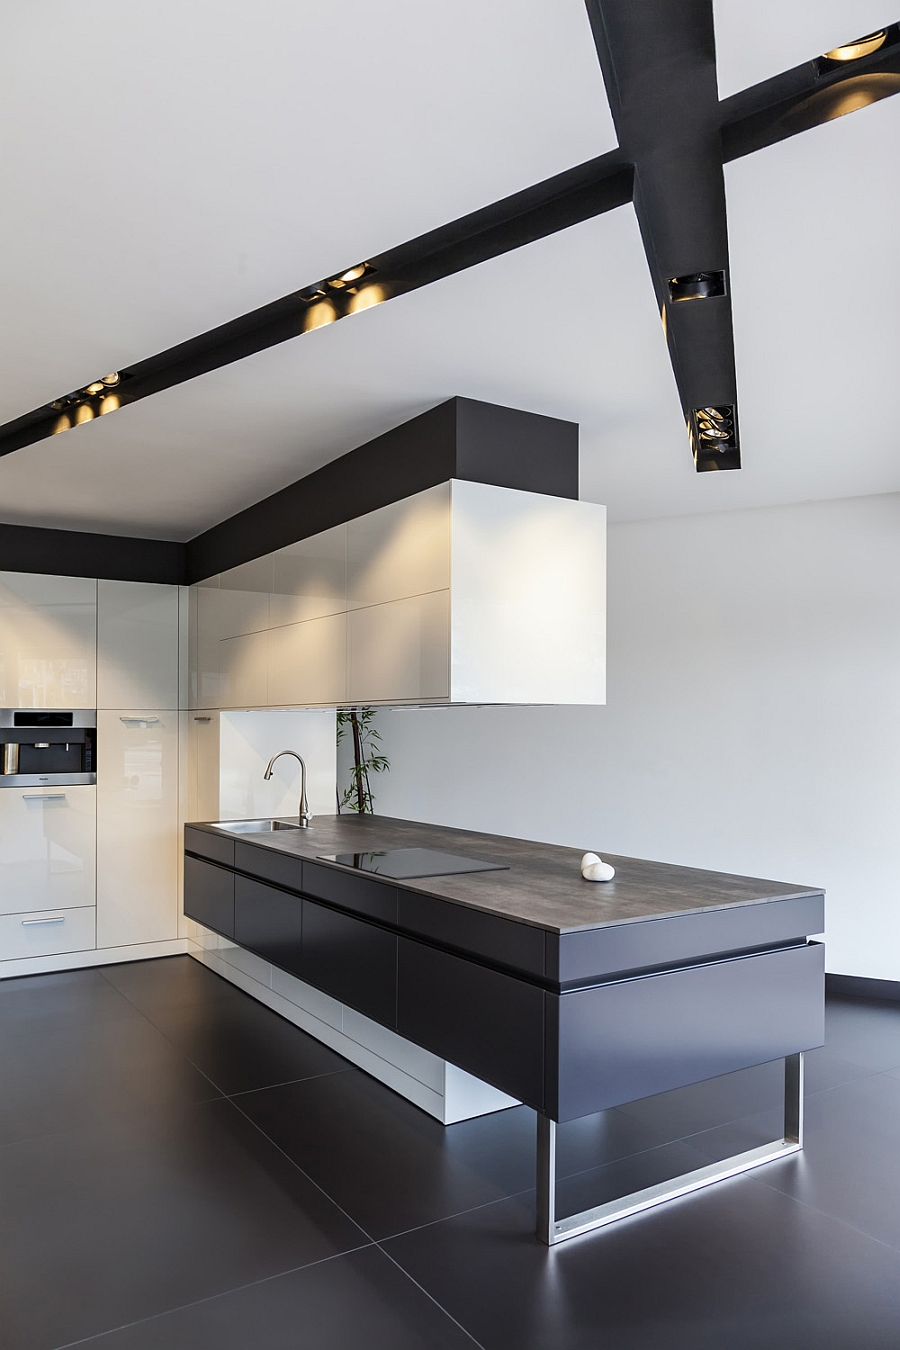 Neolith Iron Collection in trendy Grey in the modern kitchen